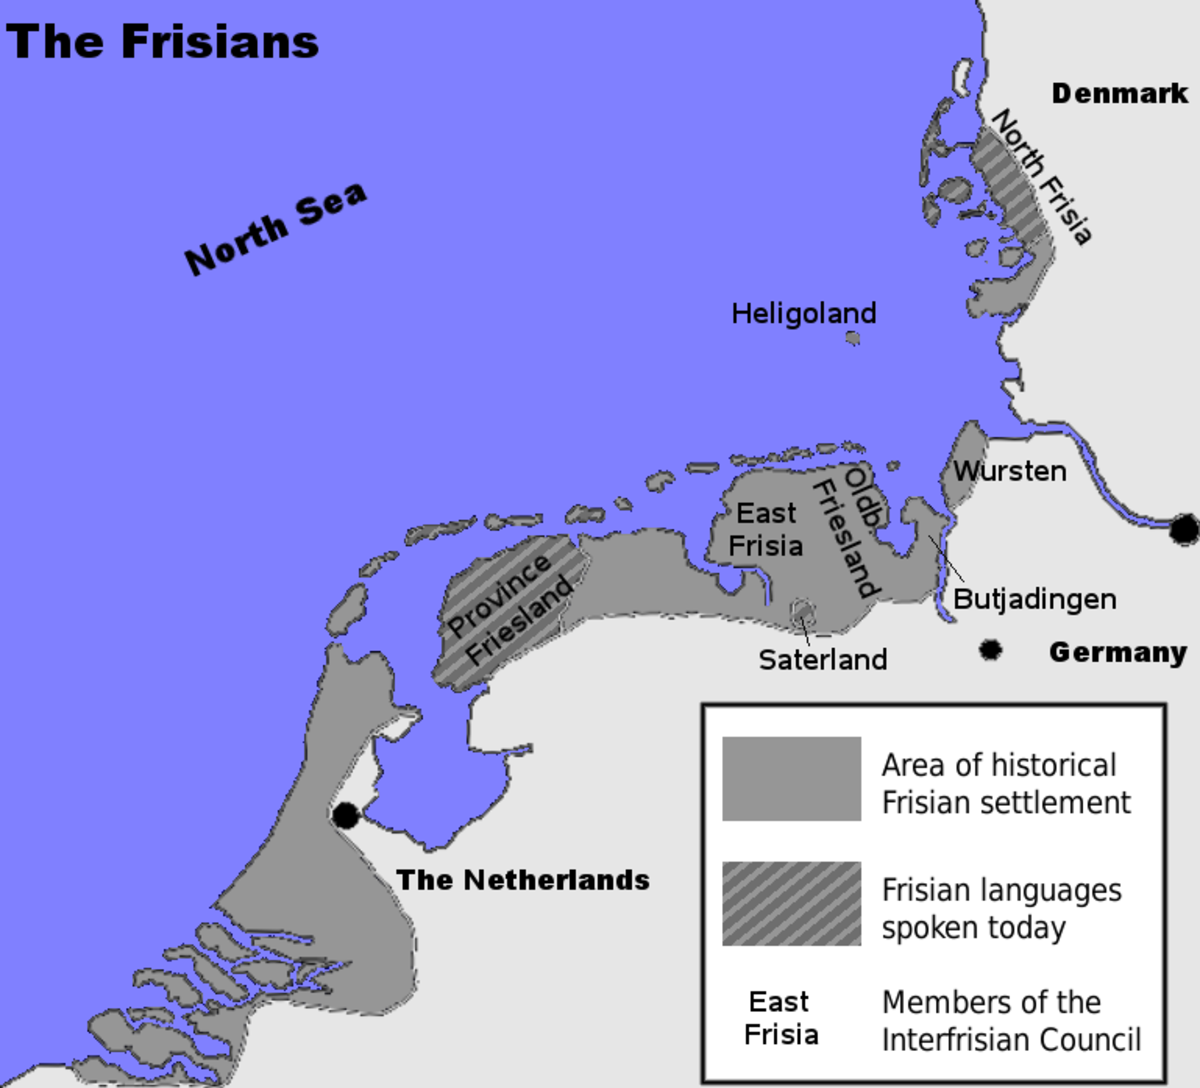 Who Were the Frisians?